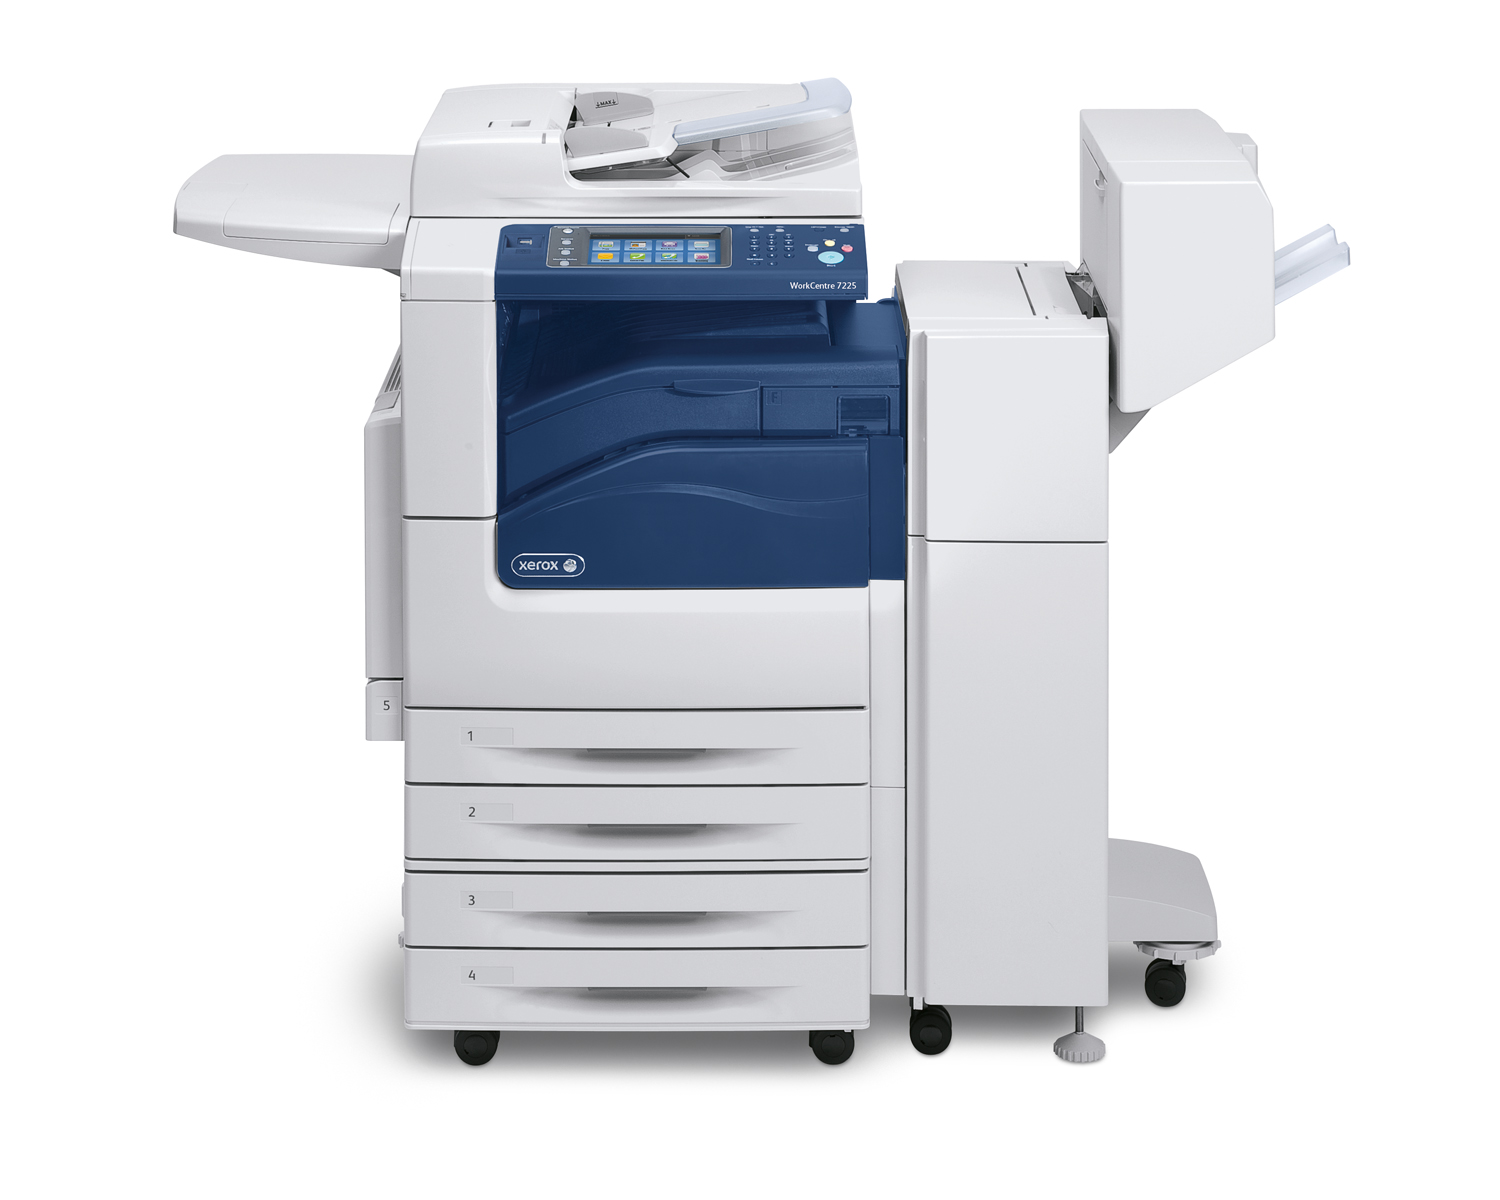 Xerox Workcentre 7220 multifunctional photocopier system